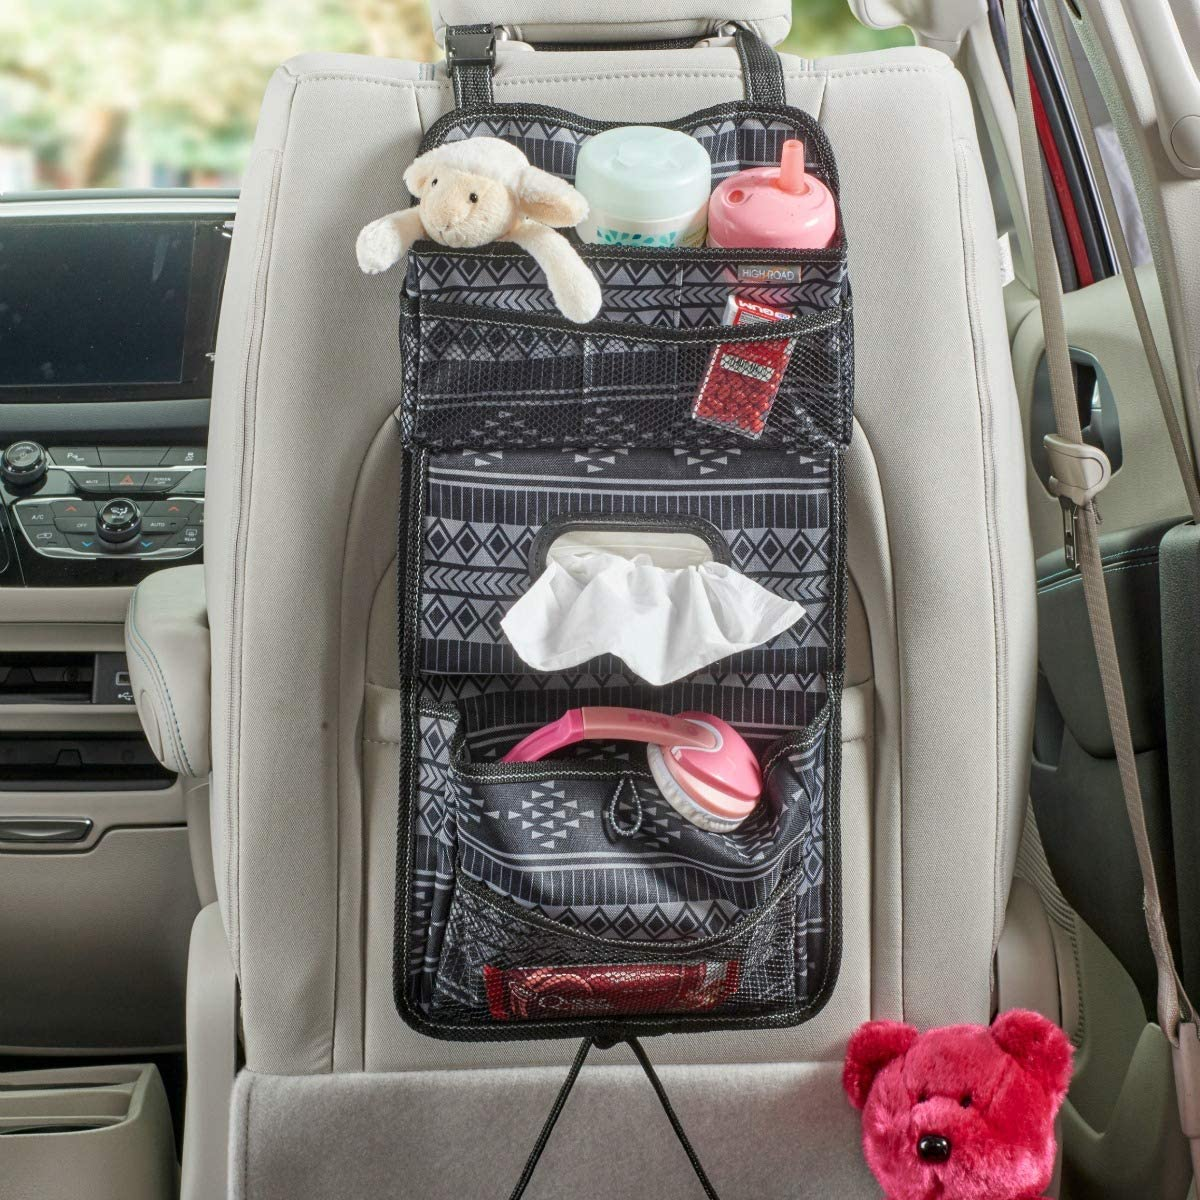 TALU2 High Road Carganizer Car Console Organizer with Cover Talus